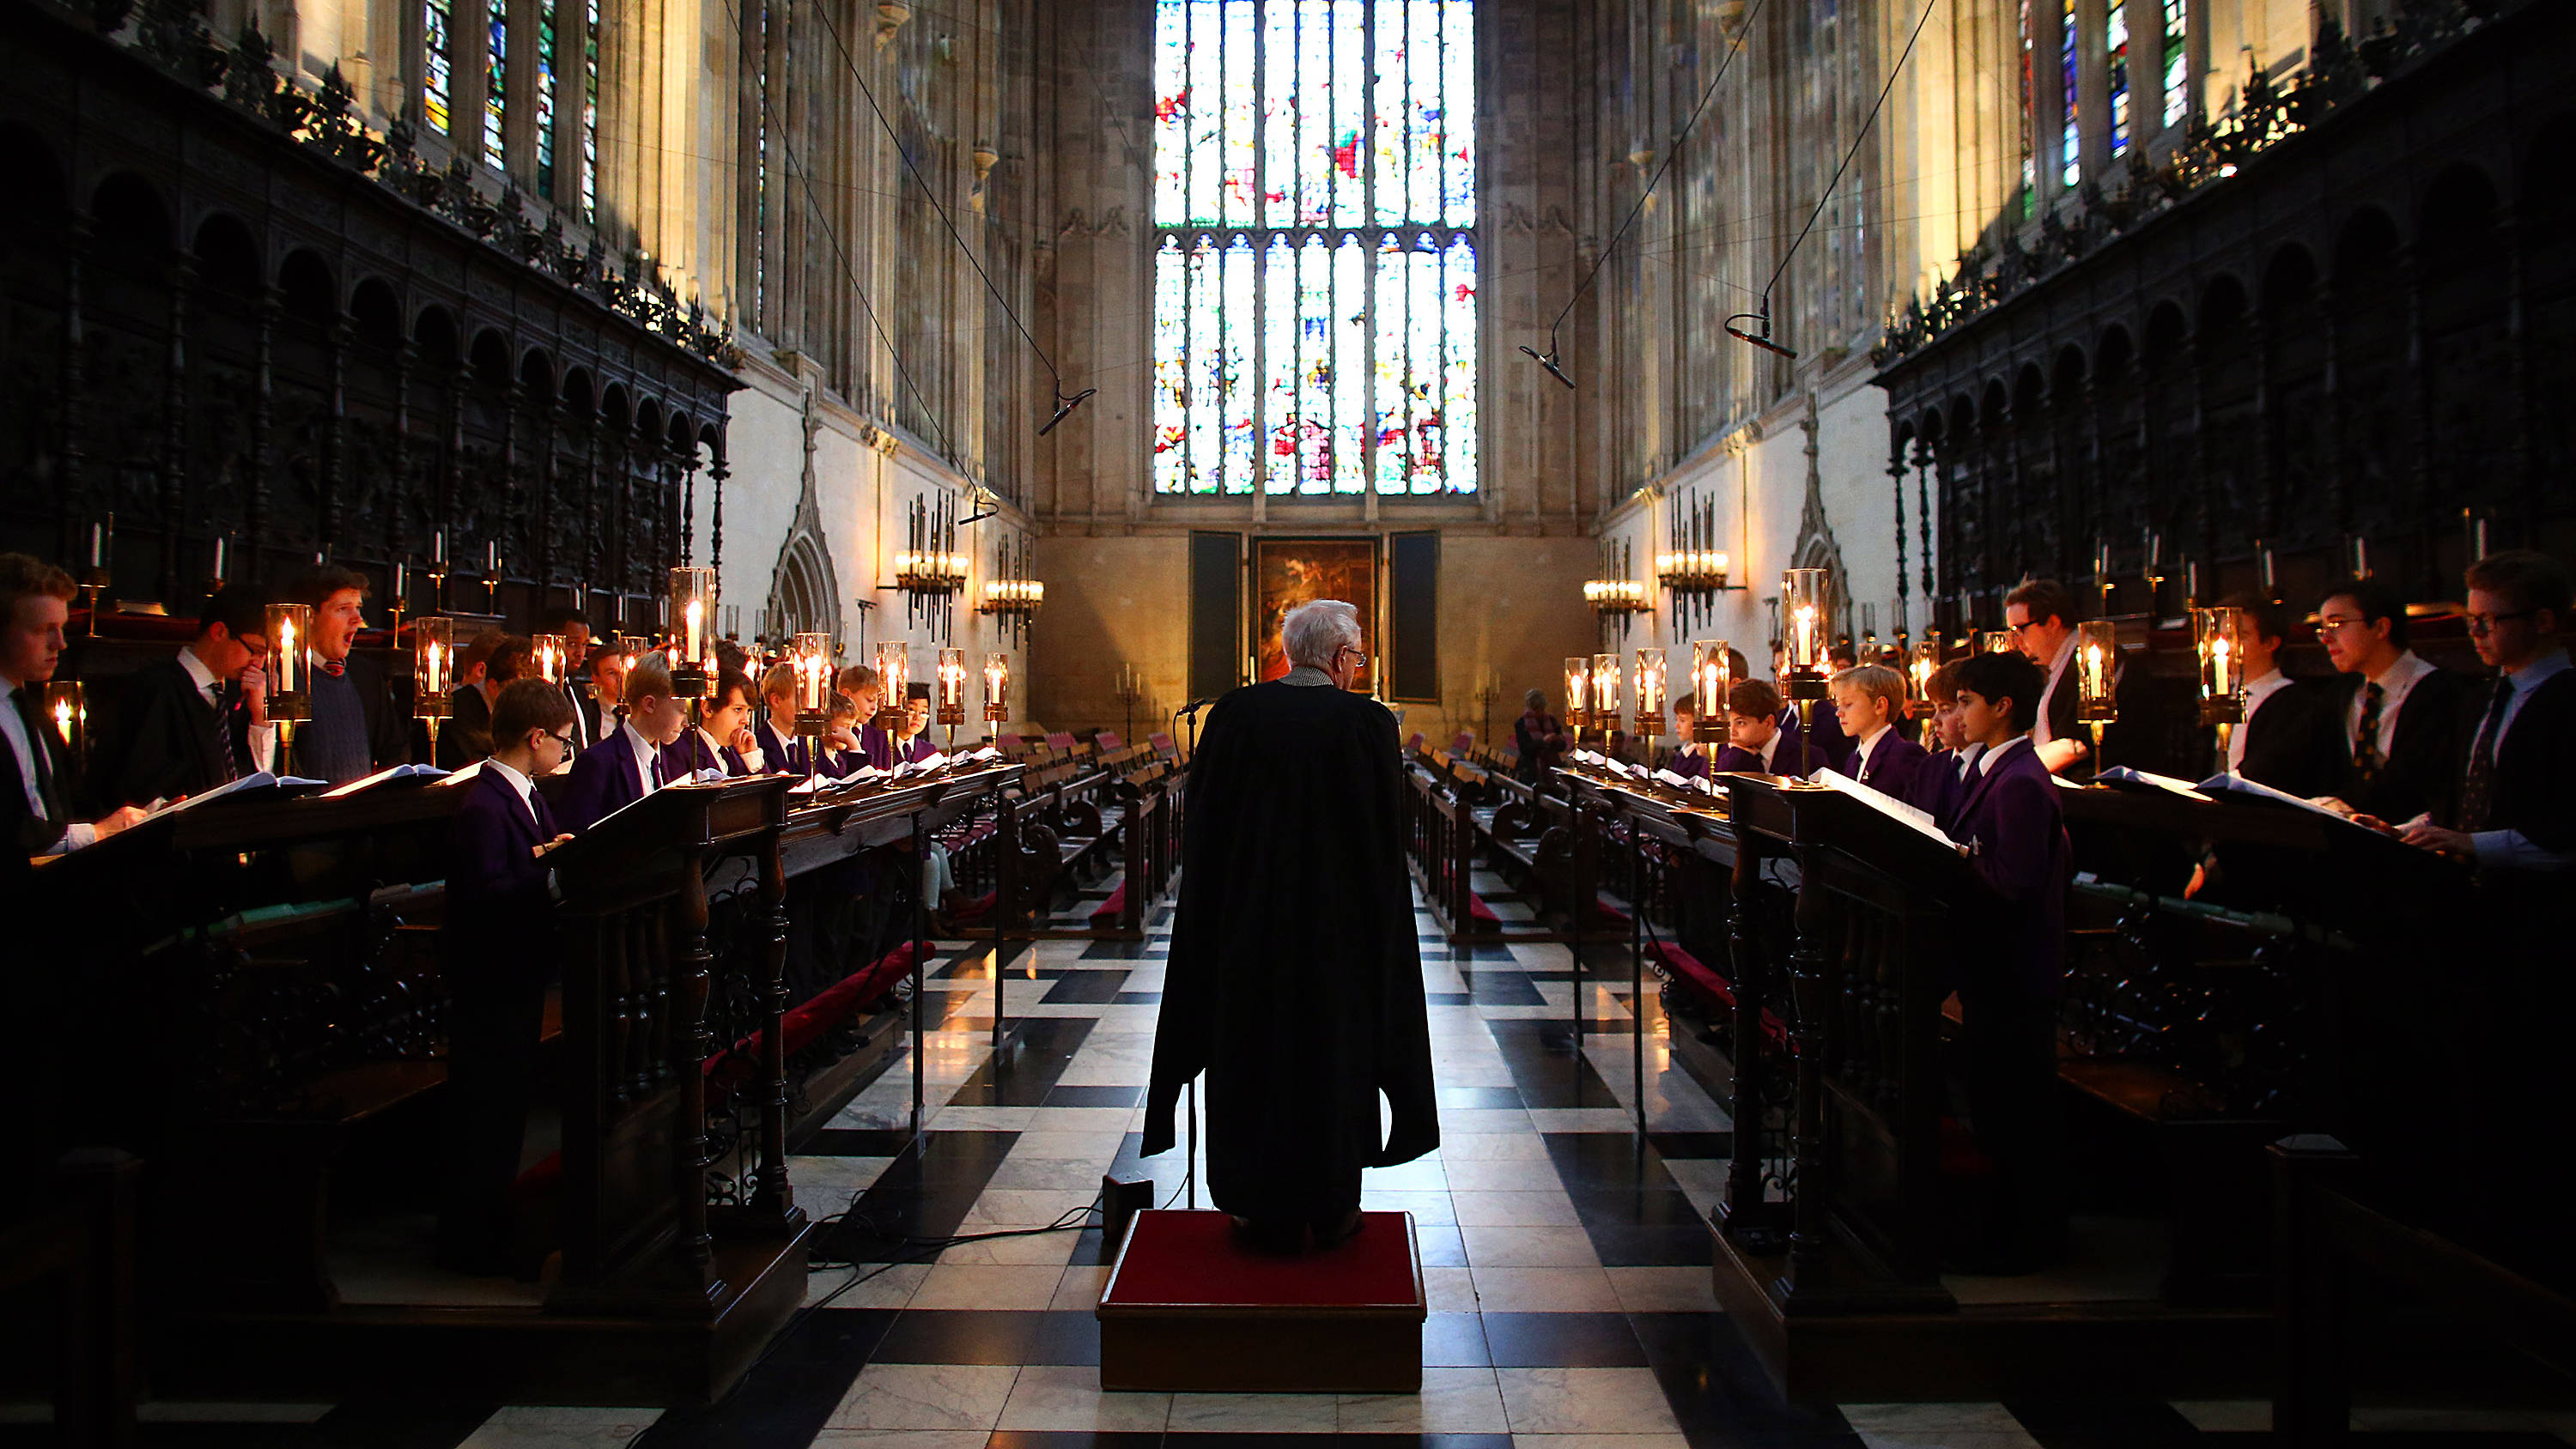 Kings College Christmas Broadcast 2020 Where To Listen King's College Choir – members, songs and the famous festival of